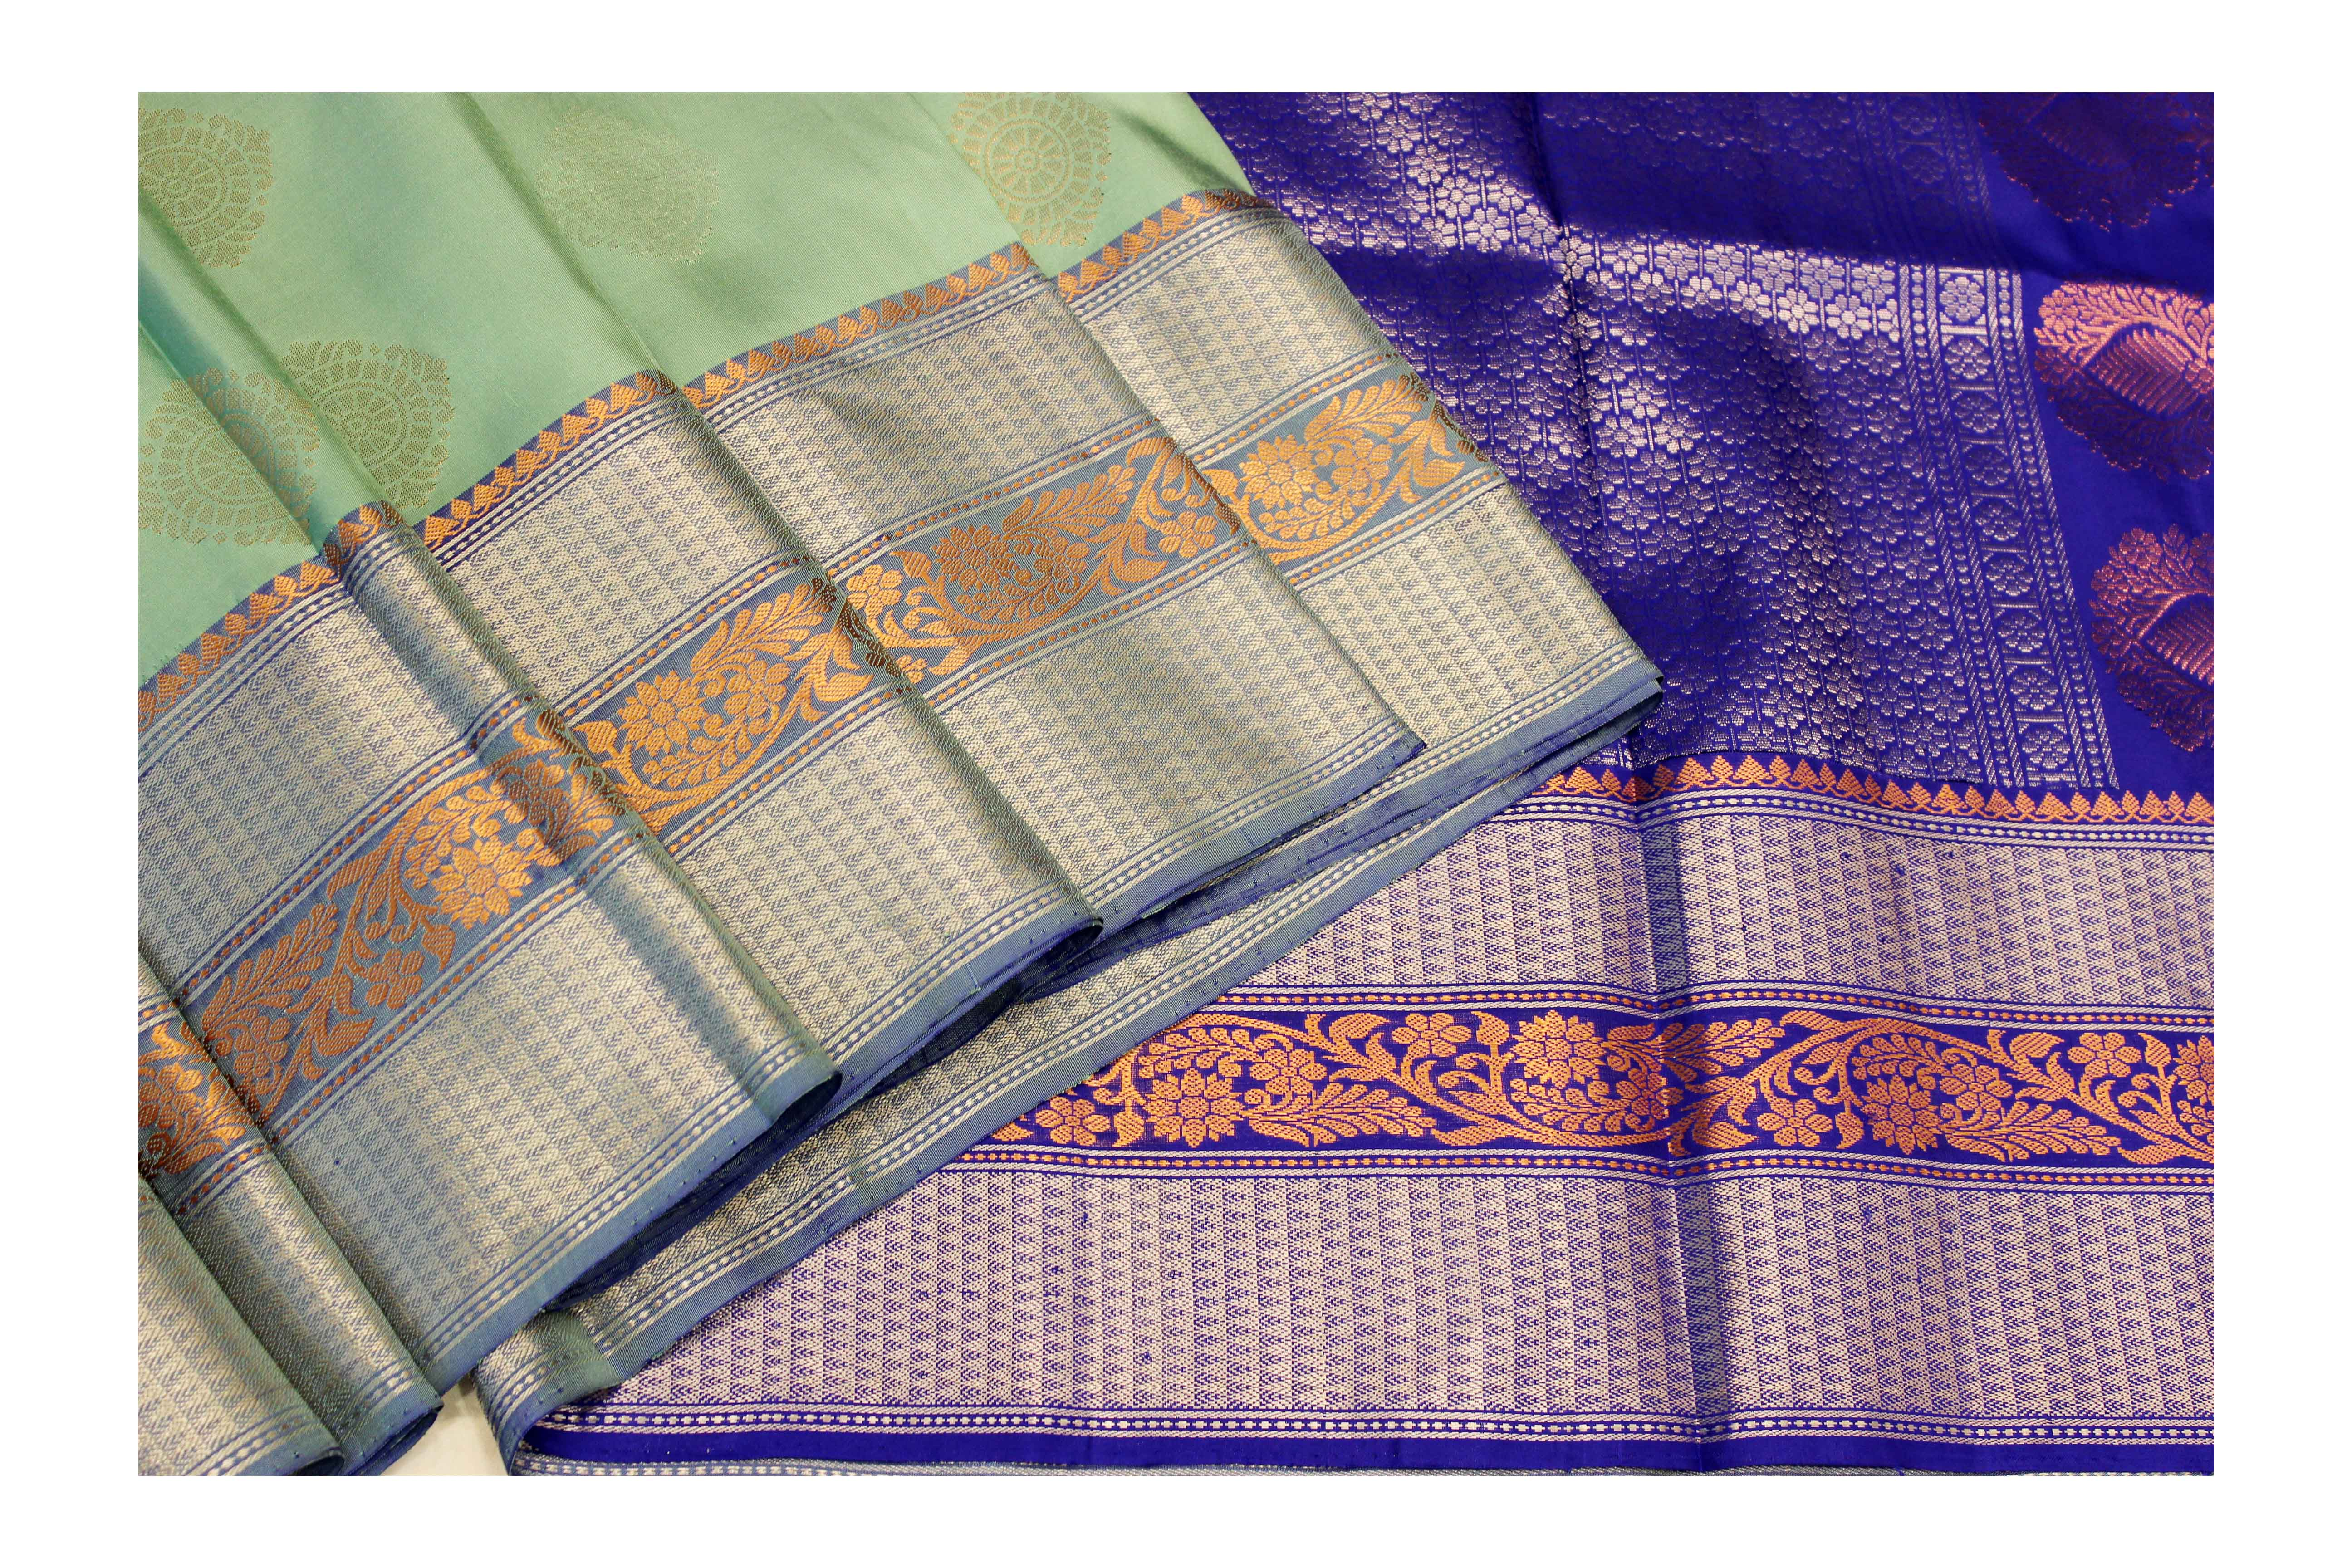 Mixture of green and violet silk with golden Jari